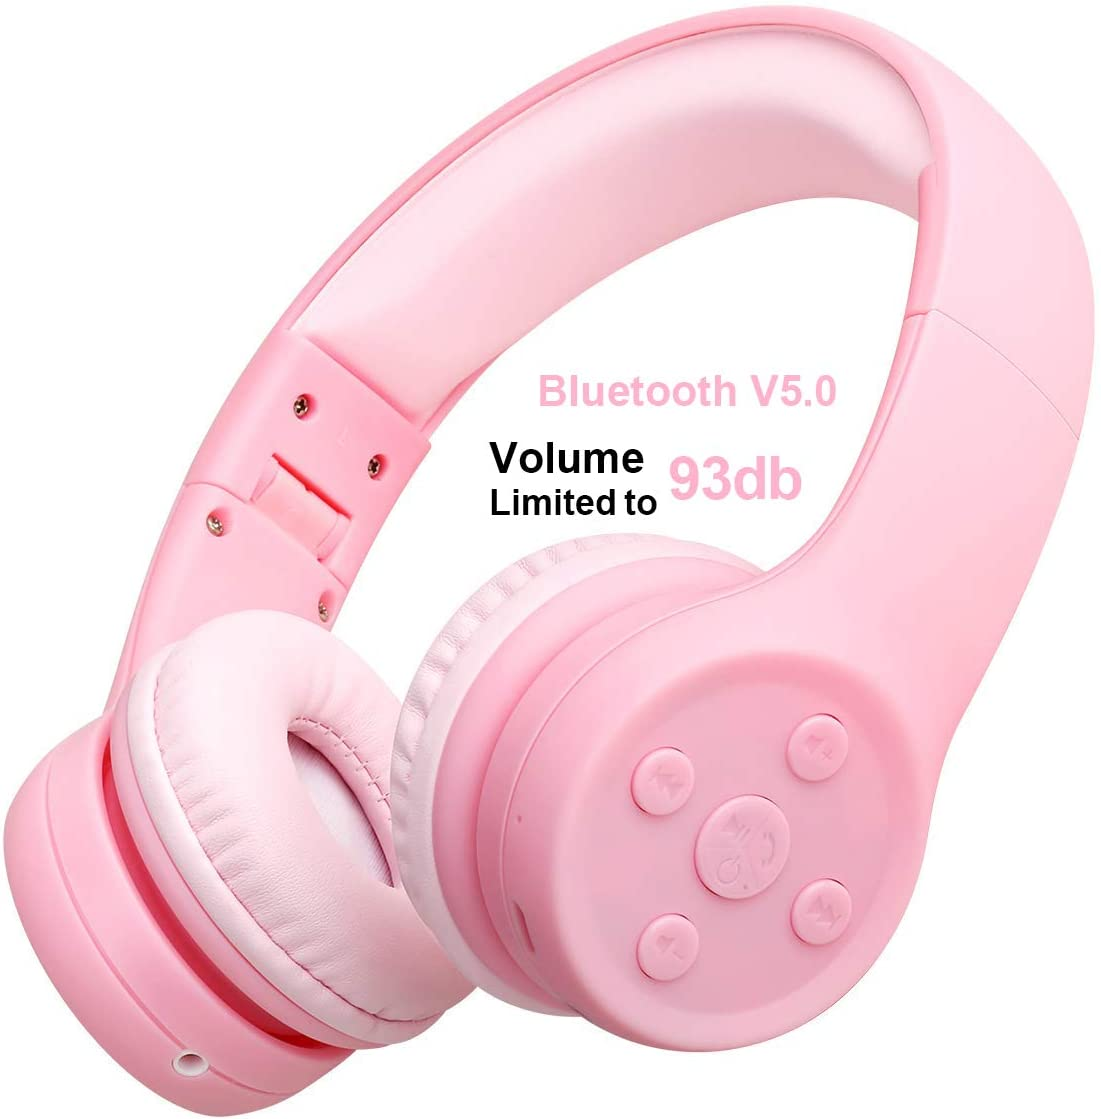 Bluetooth Toddlers Headphones  are the made of high quality of material this is the best fot the kids and toddlers